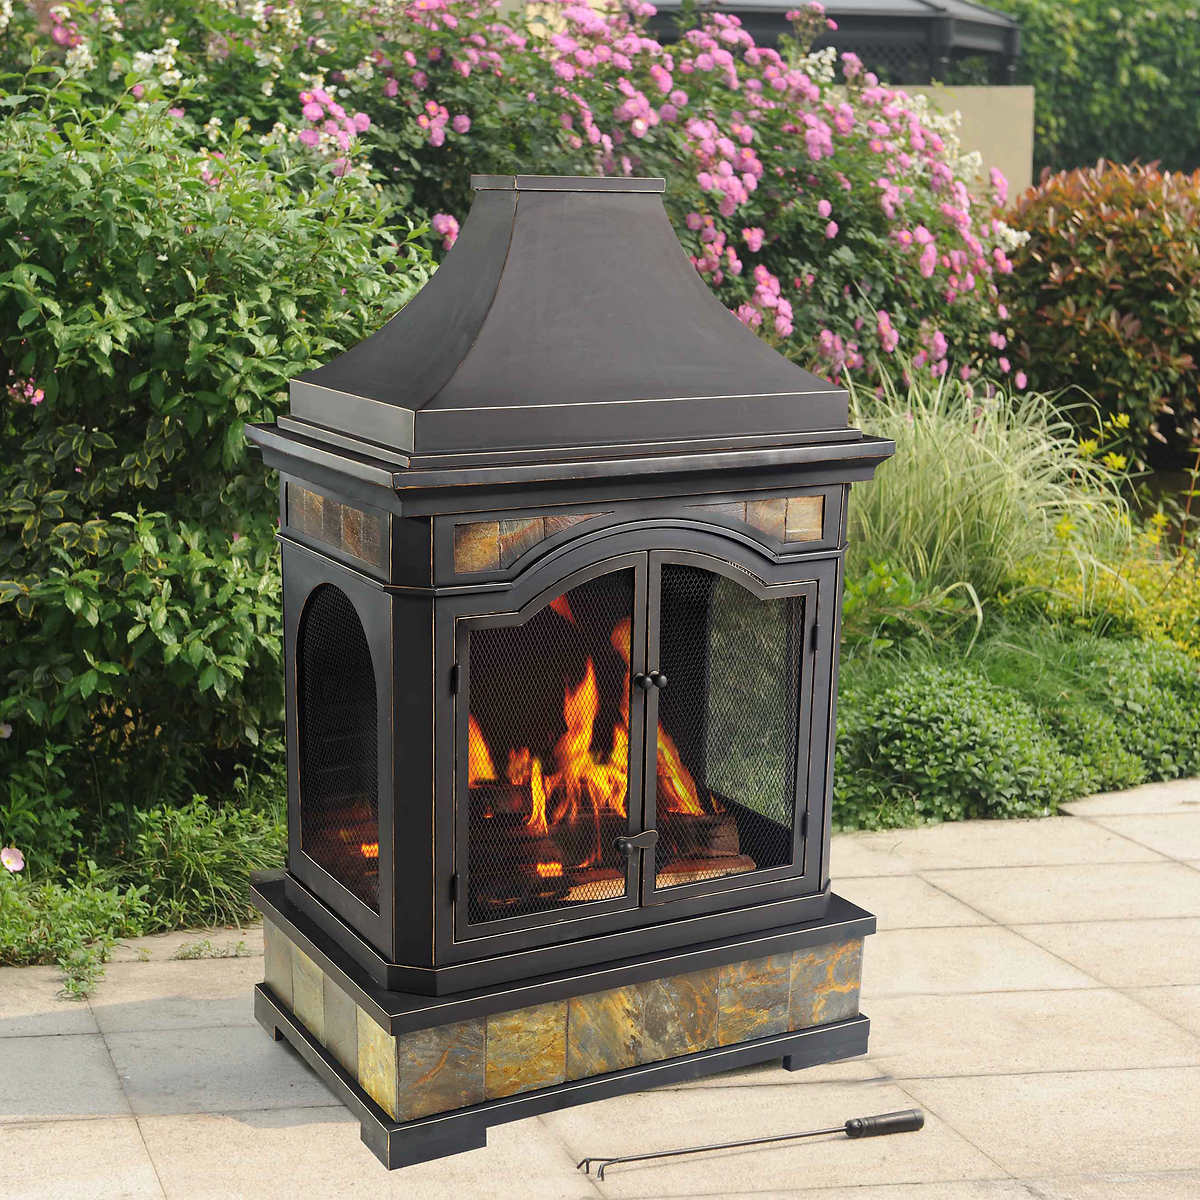 outdoor wood burning fireplace how do real flame. Black Bedroom Furniture Sets. Home Design Ideas